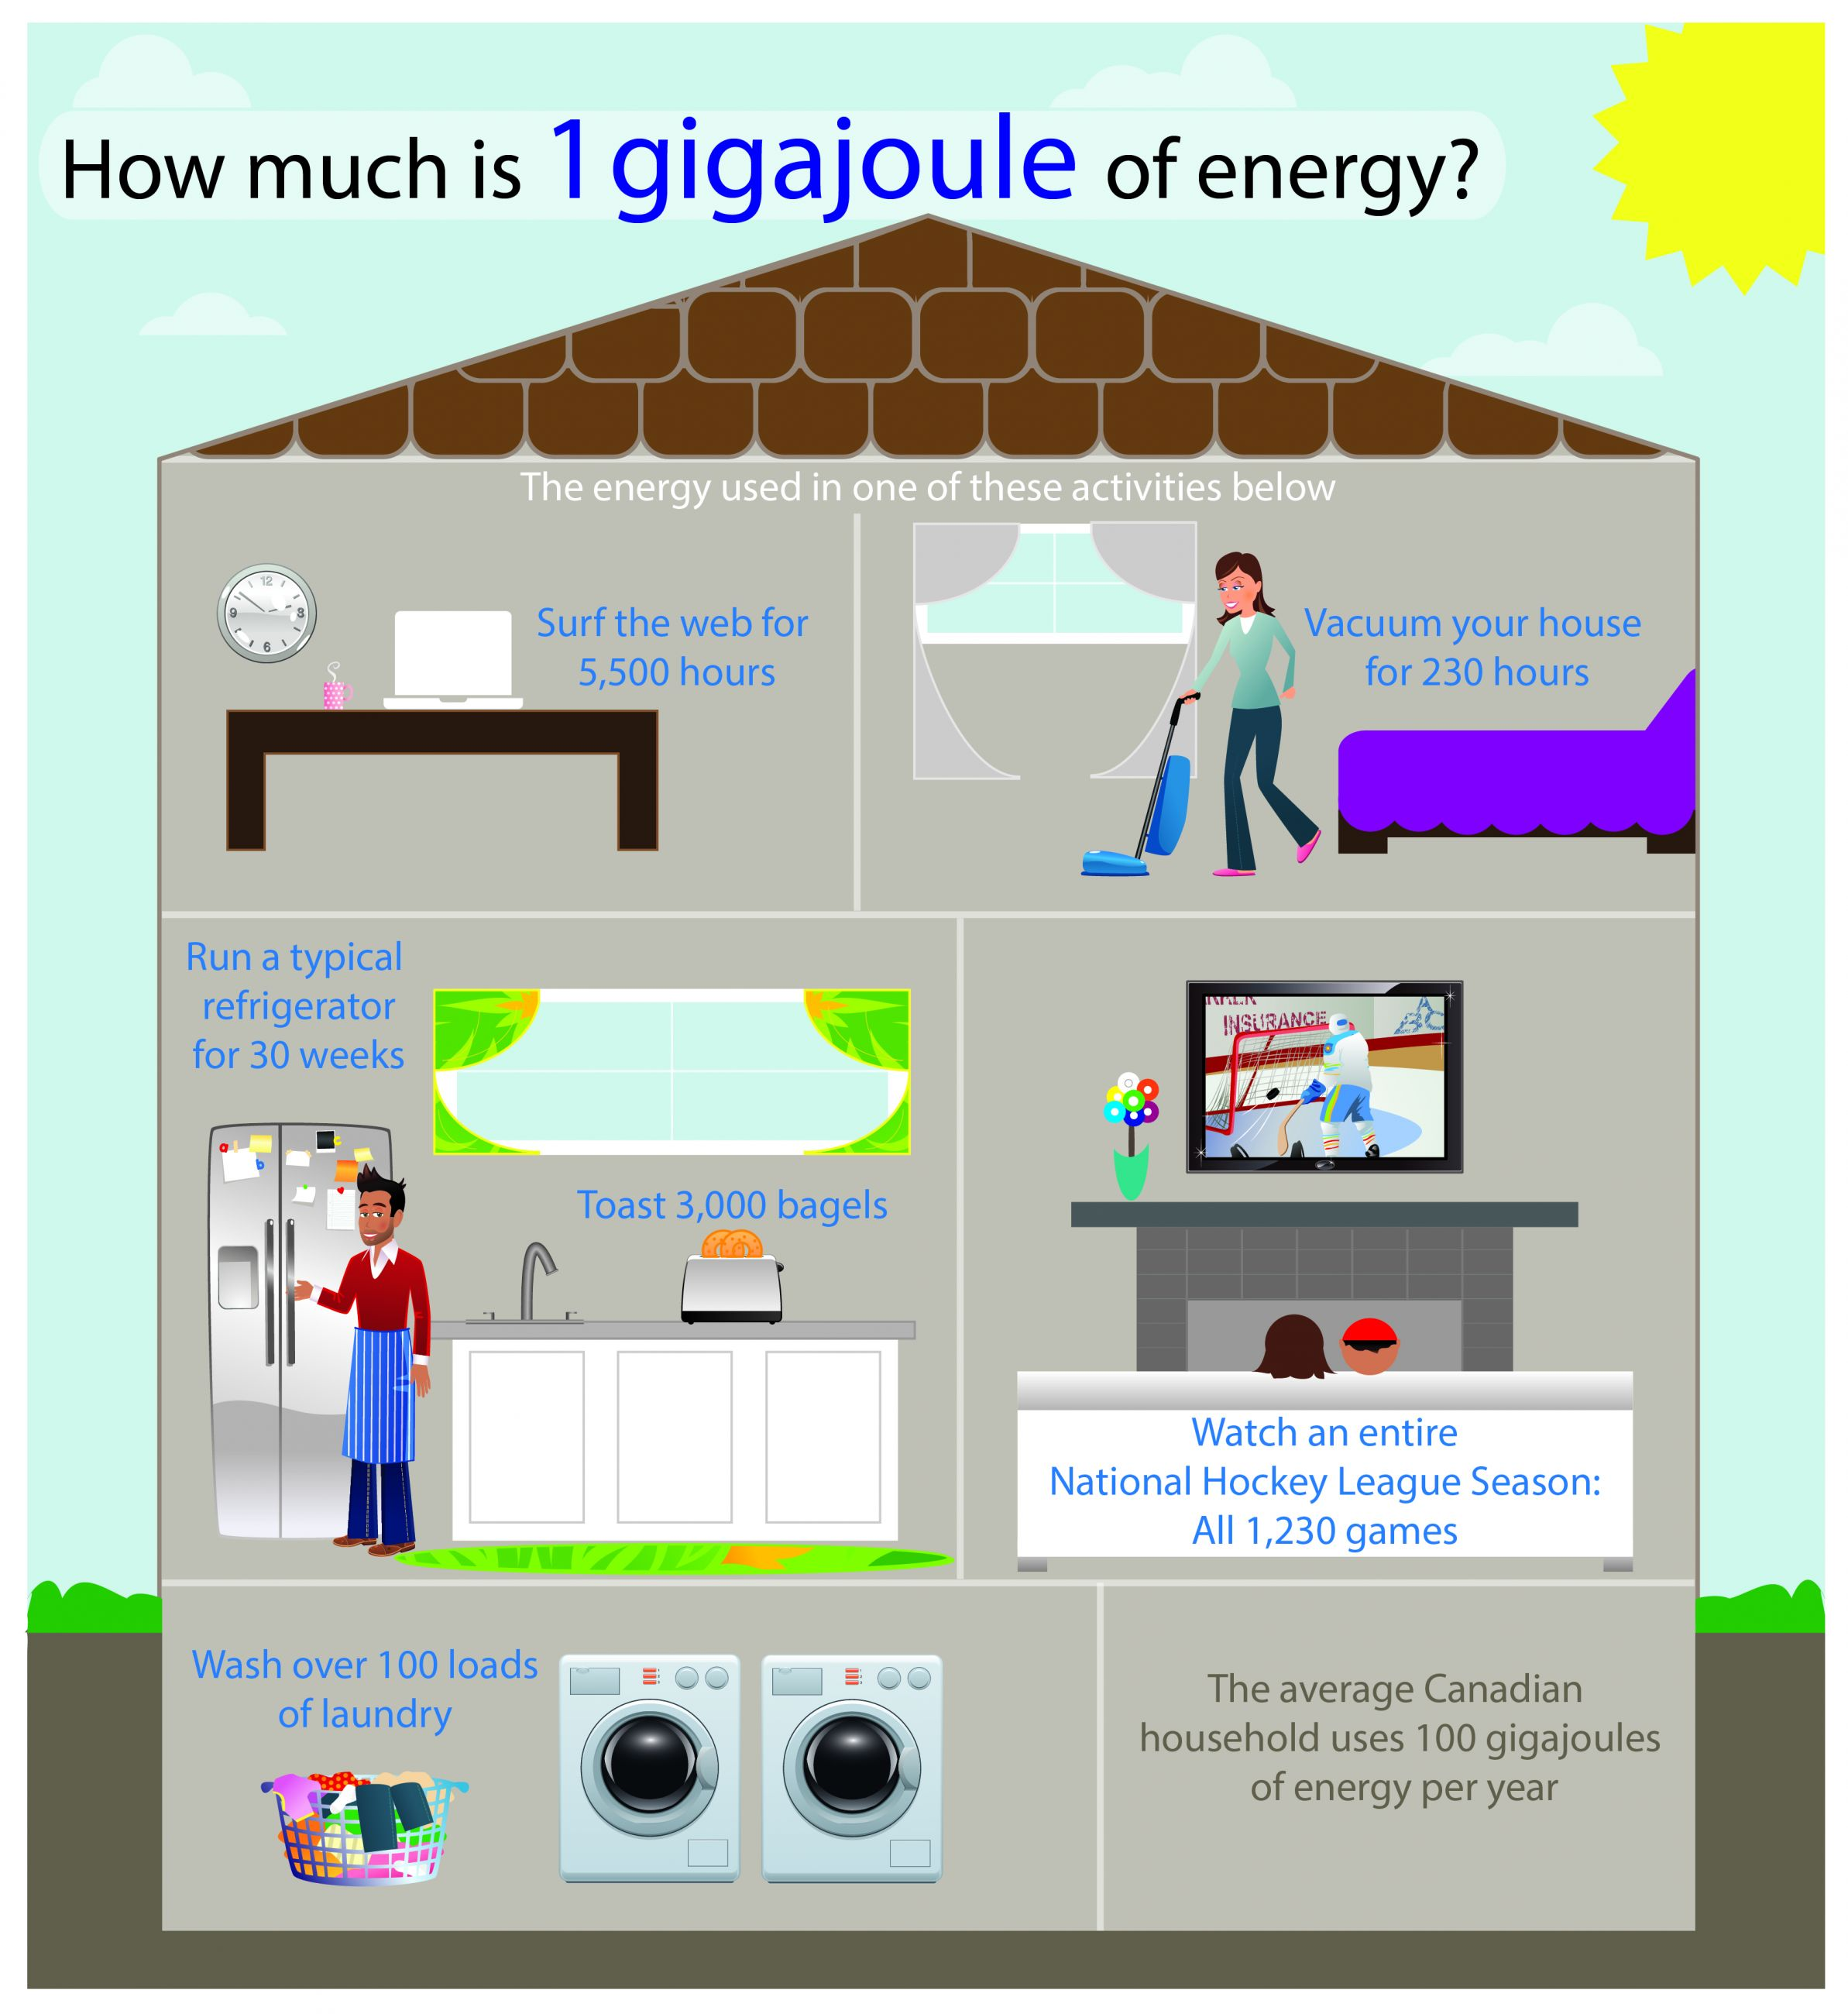 How much is 1 gigajoule of energy?